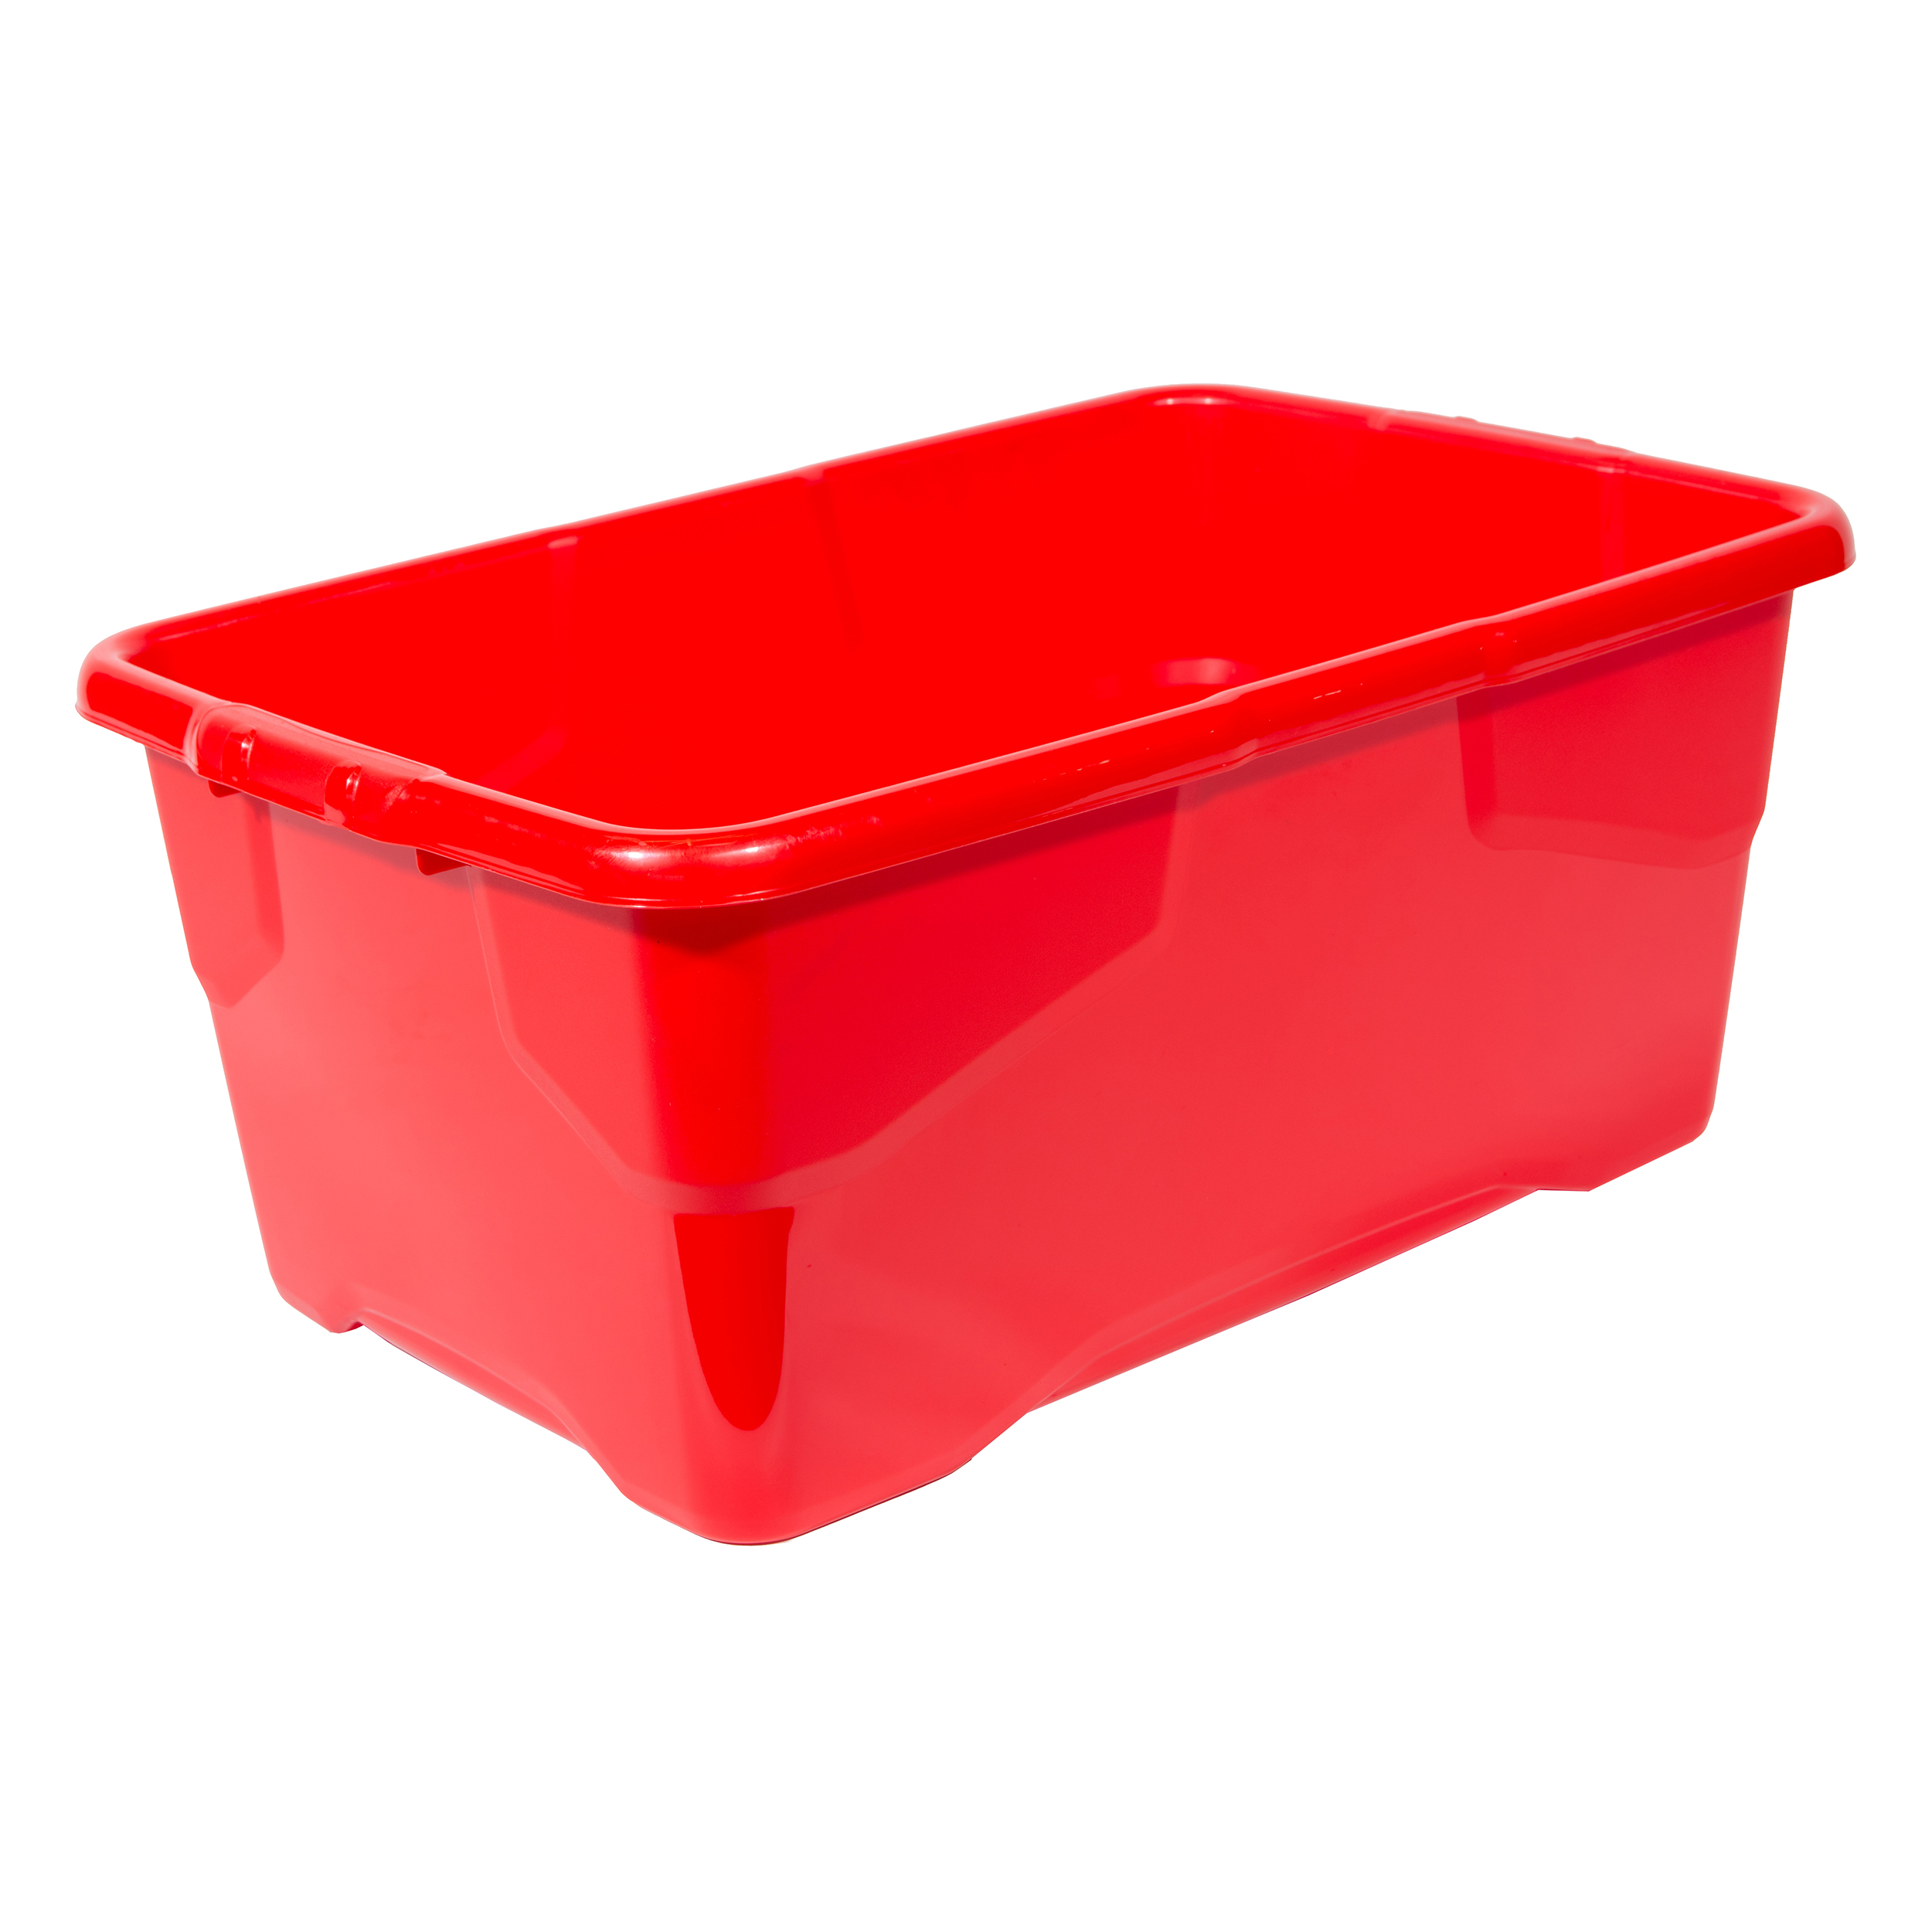 File storage boxes or organizers Strata Curve Box 42 Litre Red Ref XW202B-RED